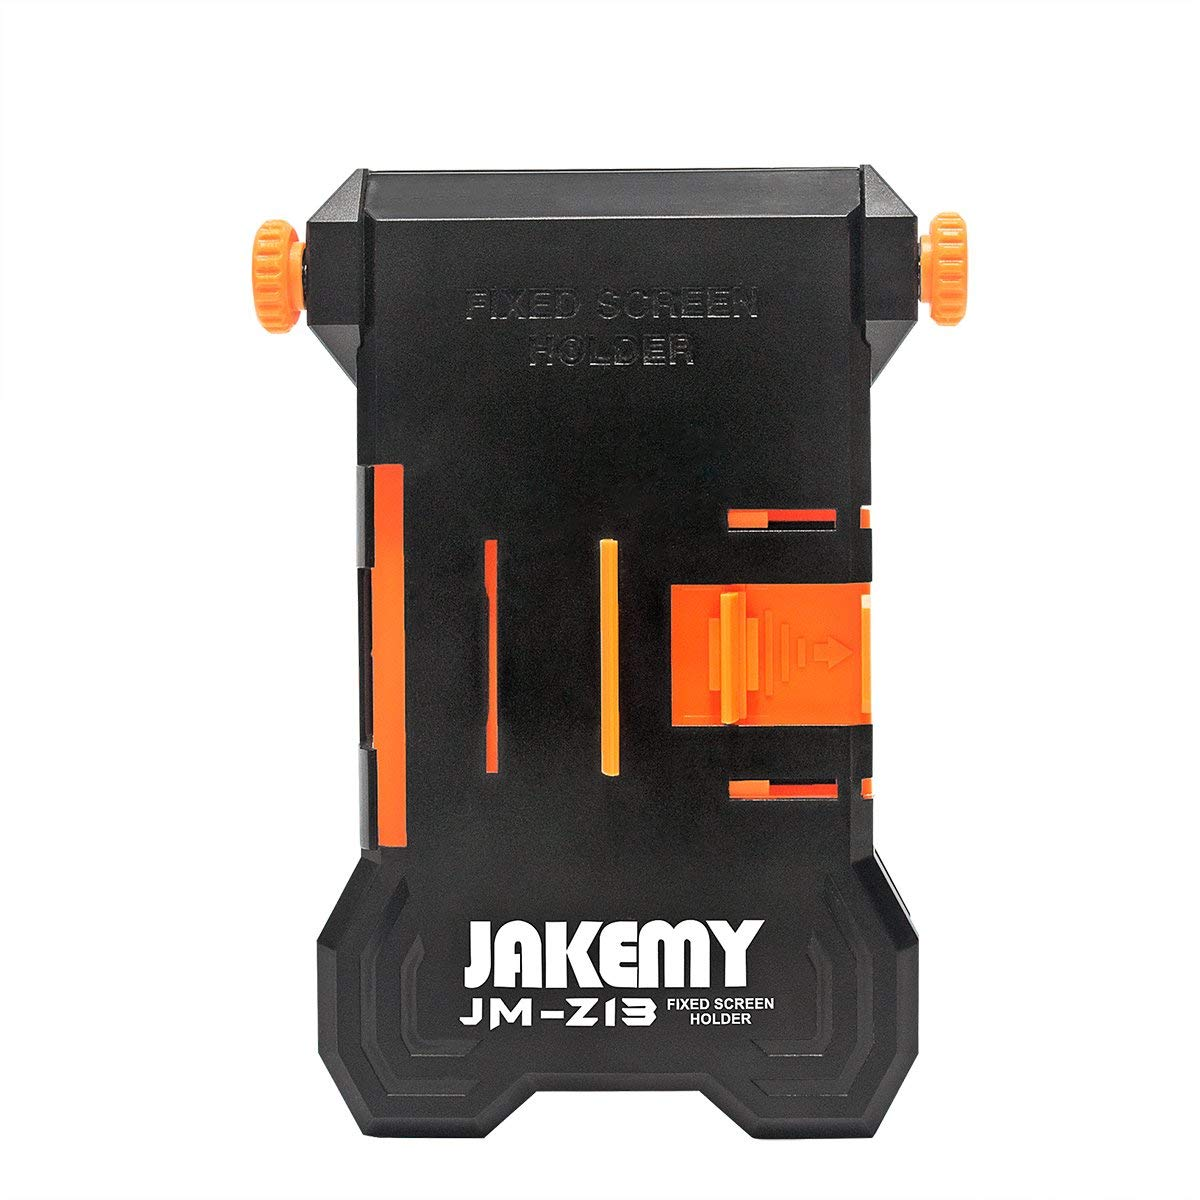 Buy Pcb Holder Mobile Phone Repairing Repair Tool In Cheap Price On Cellphone Fixtures Circuit Boards For Samsung Signstek Screen 4 1 Tools With 3 Screwdrivers Bits